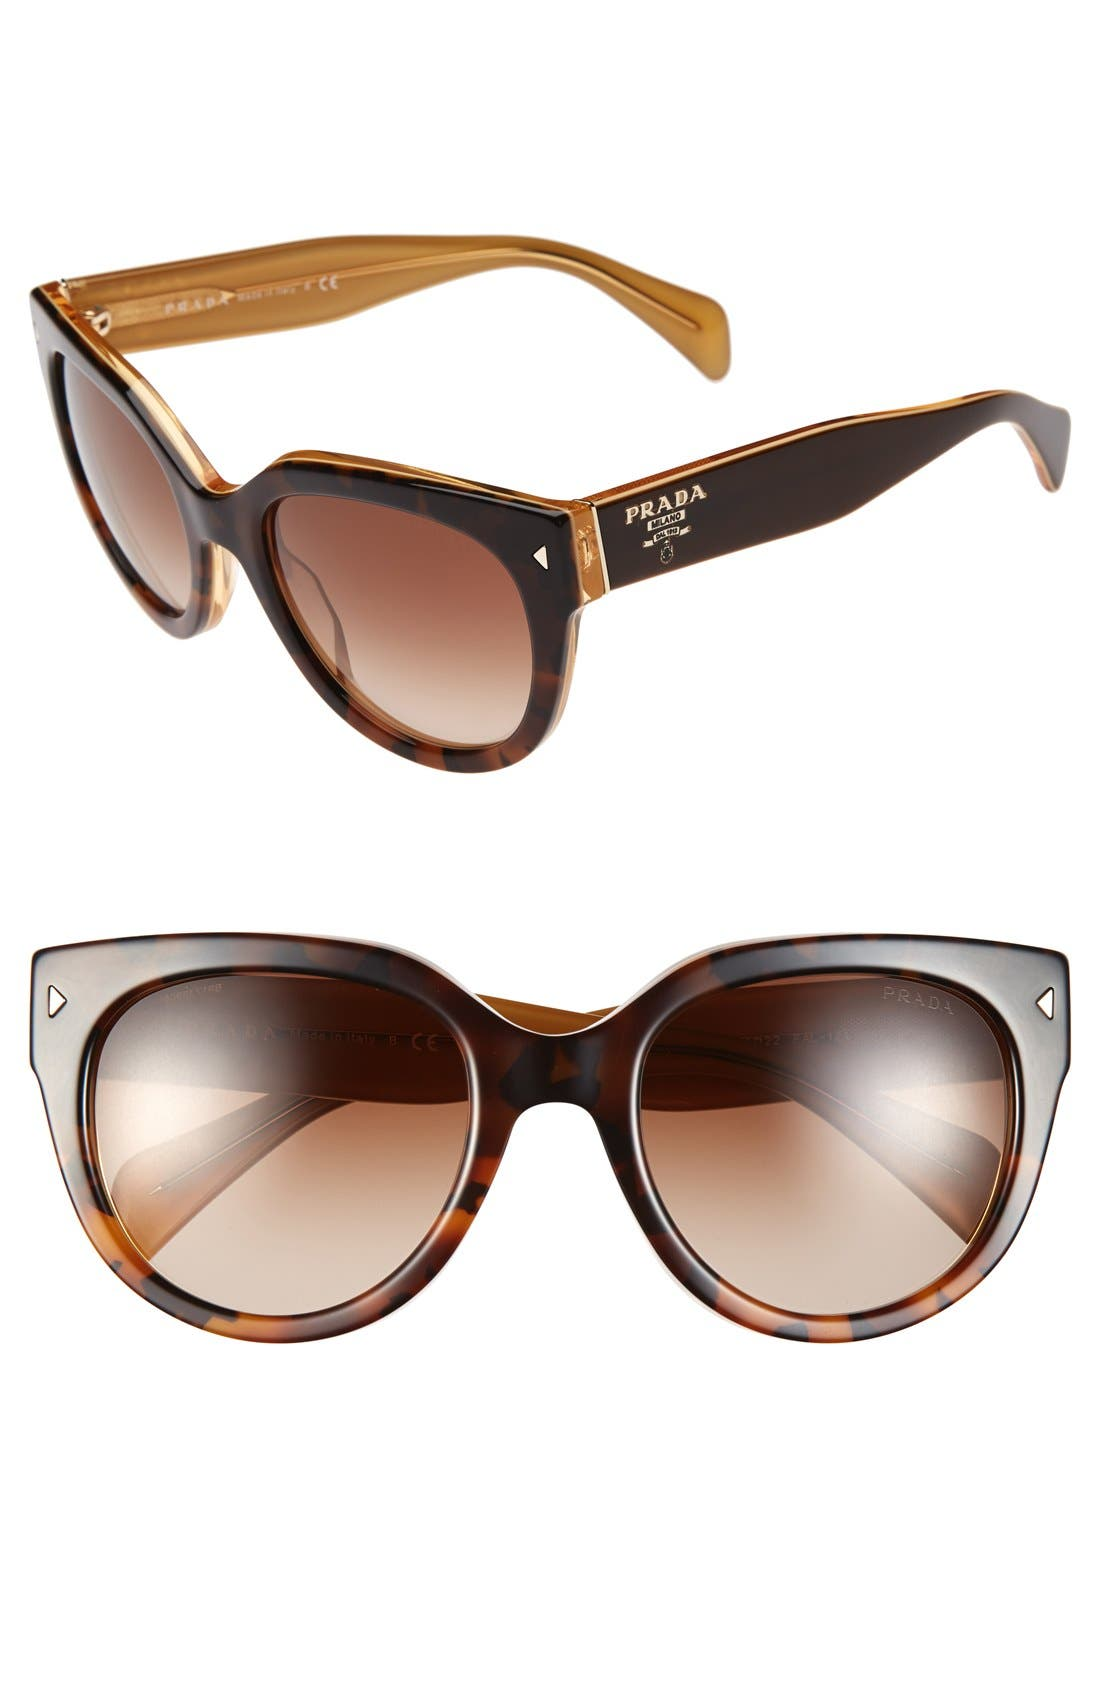 Main Image - Prada 54mm Cat Eye Sunglasses